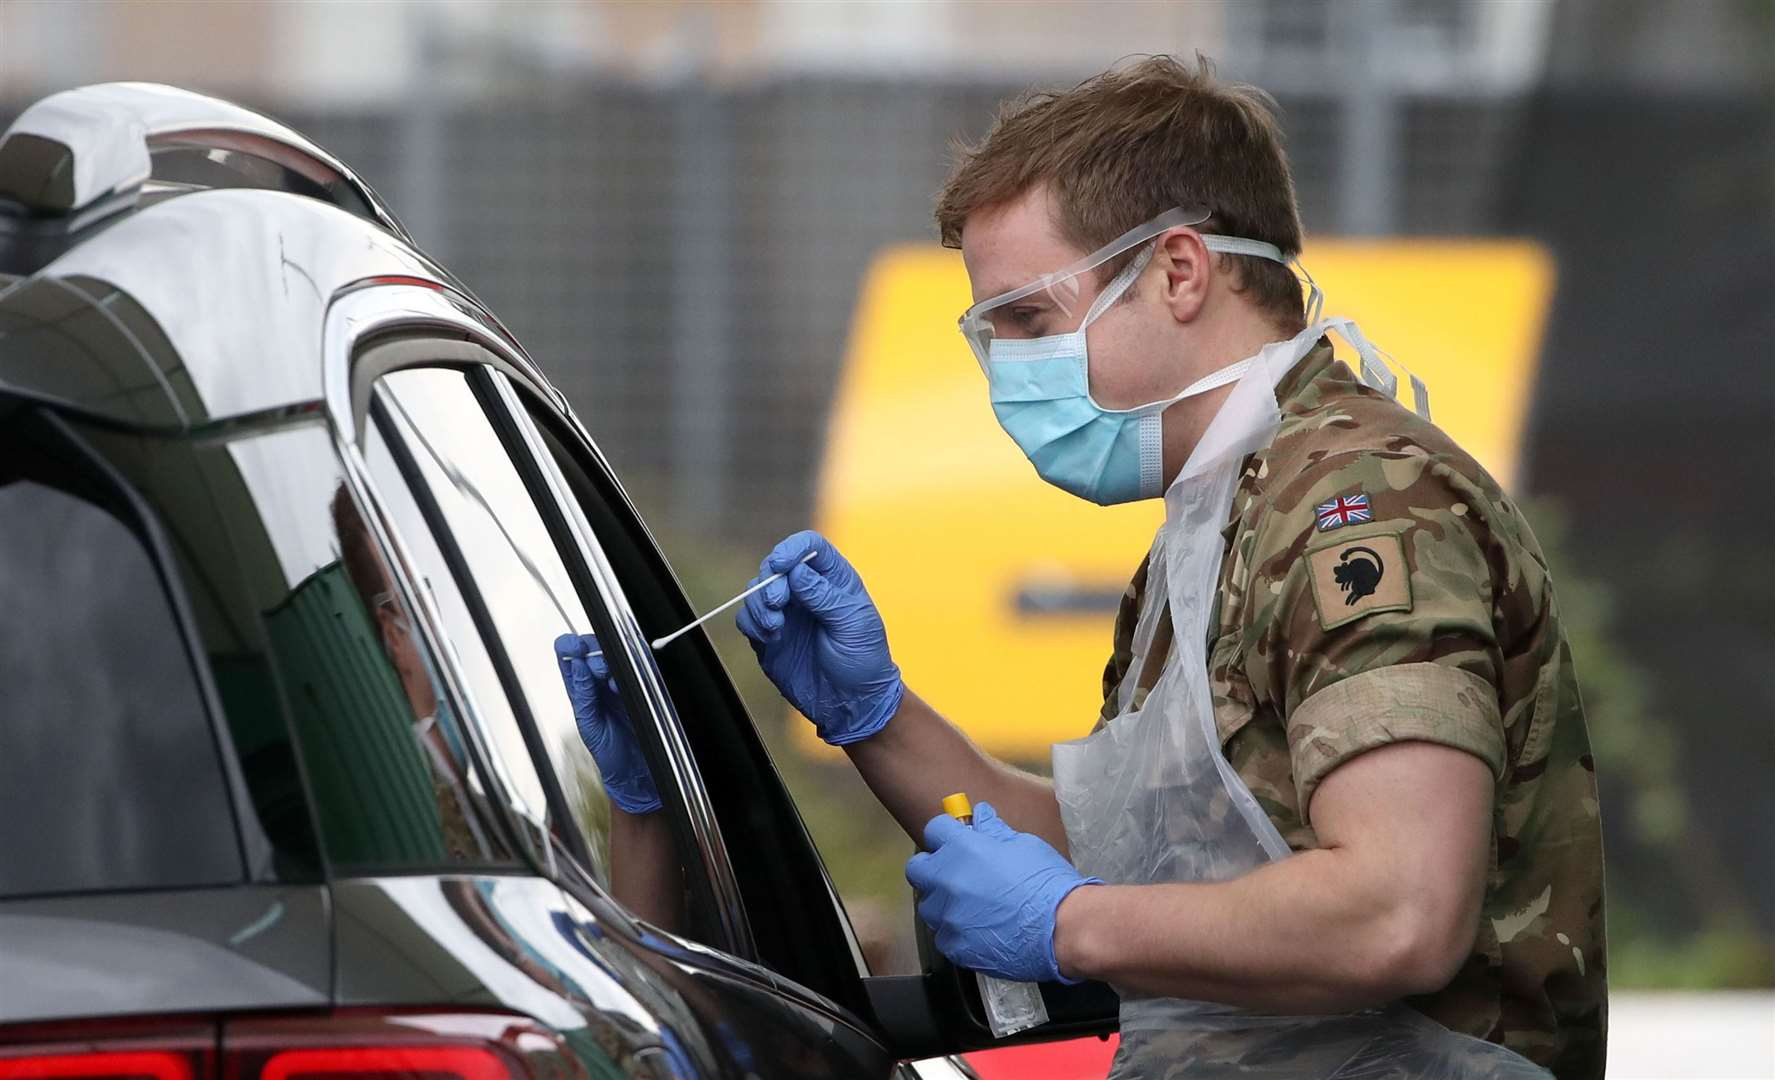 TESTING TIME: A member of the armed services carries out a swab to detect Covid-19